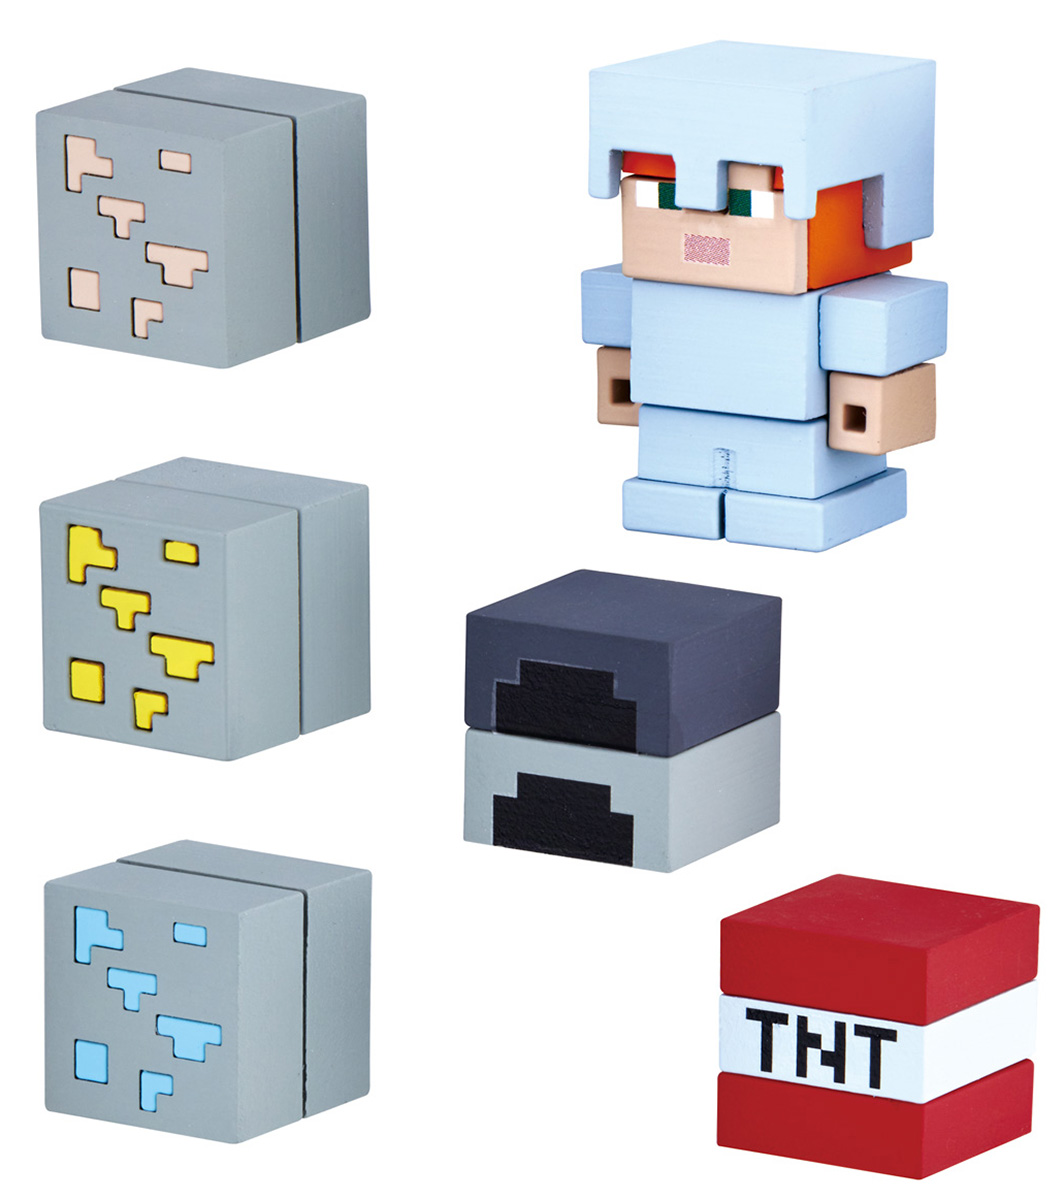 Bandai Фигурка Minecraft Mine-Cade Adv Pack Alex W 4,1 см japan anime lupin the 3rd original bandai tamashii nations shf s h figuarts toy action figure fujiko mine